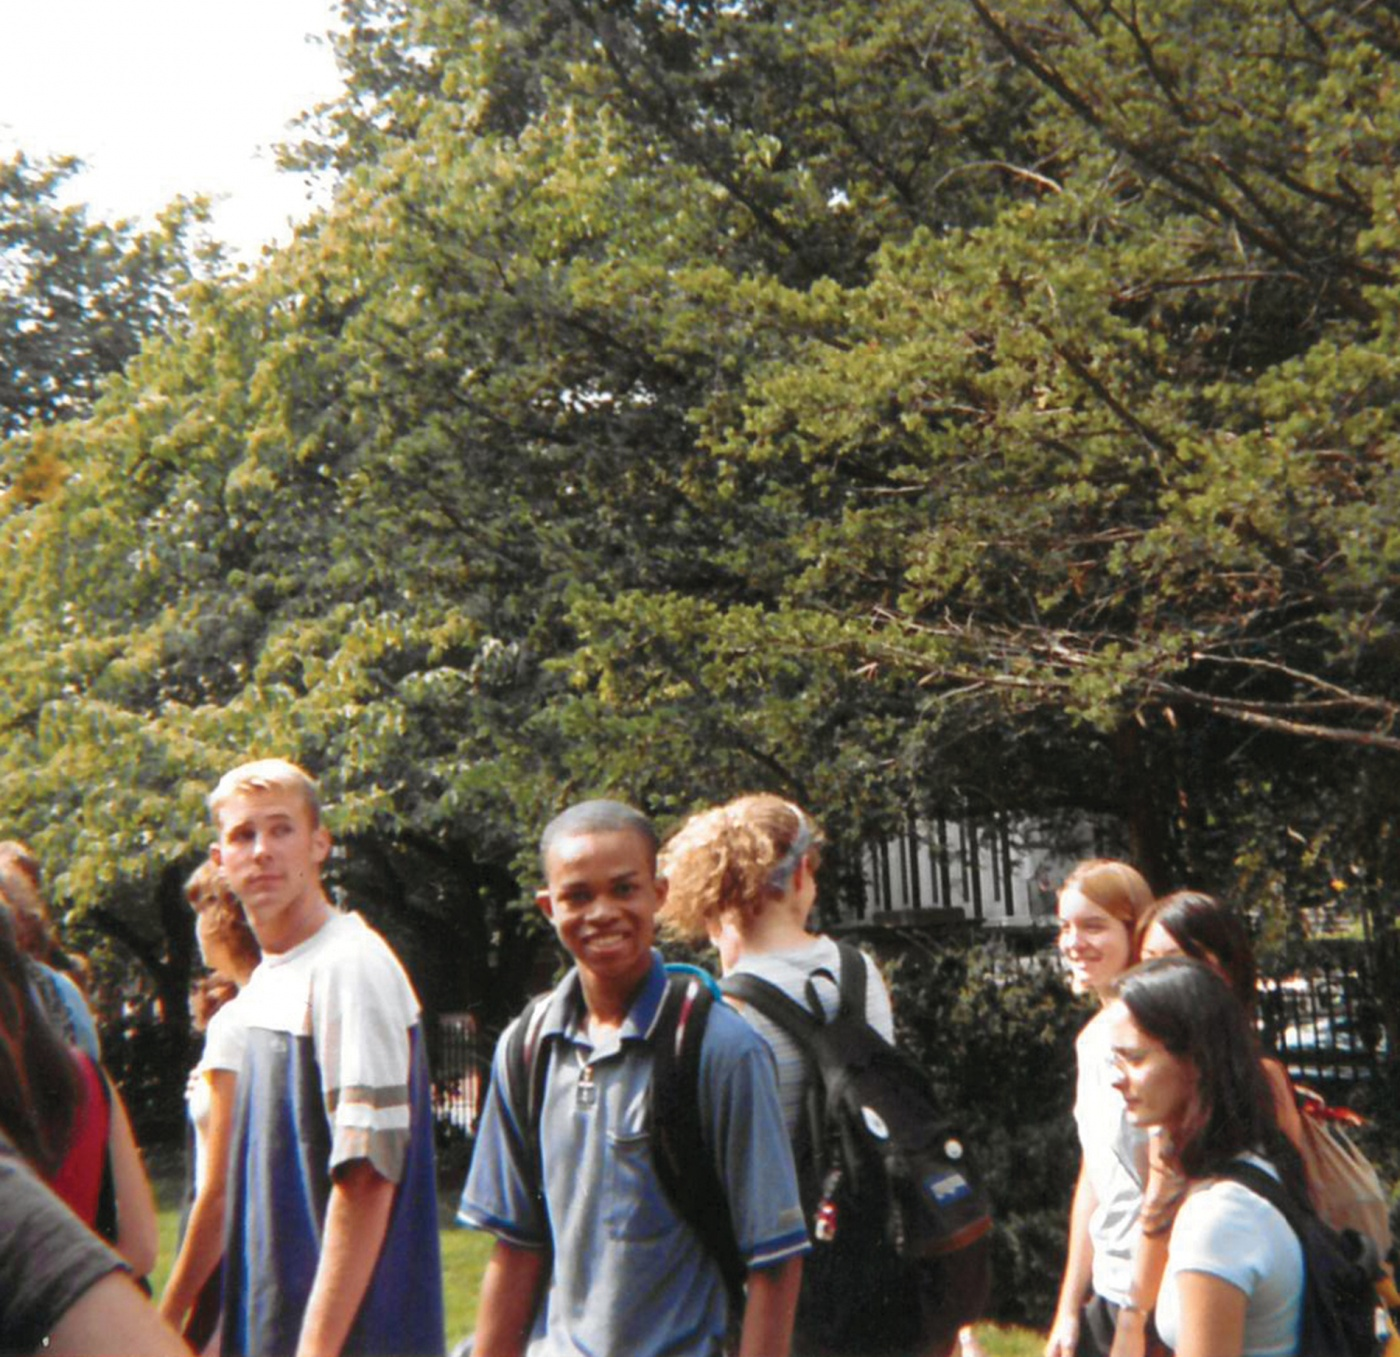 St. Clair walking through the Van Wickle Gates as a first-year in fall 2001.